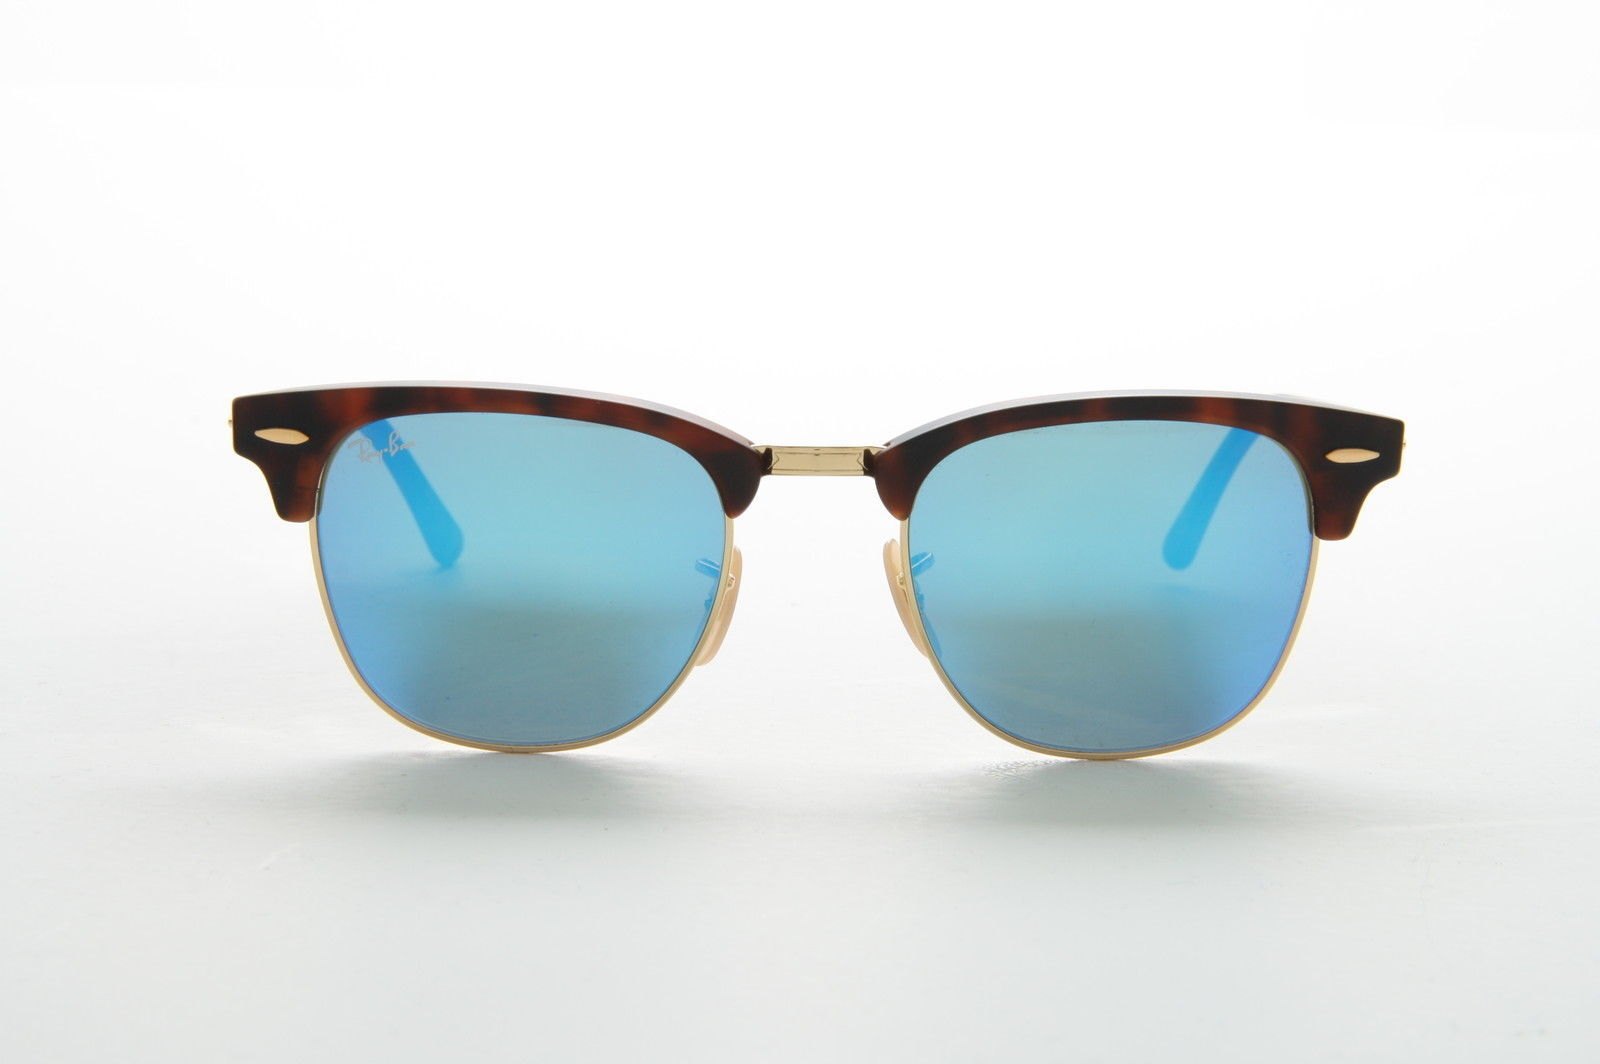 00e9aed57d1 Sunglasses Ray-Ban Clubmaster Rb3016 114517 51 RAYBAN for sale ...